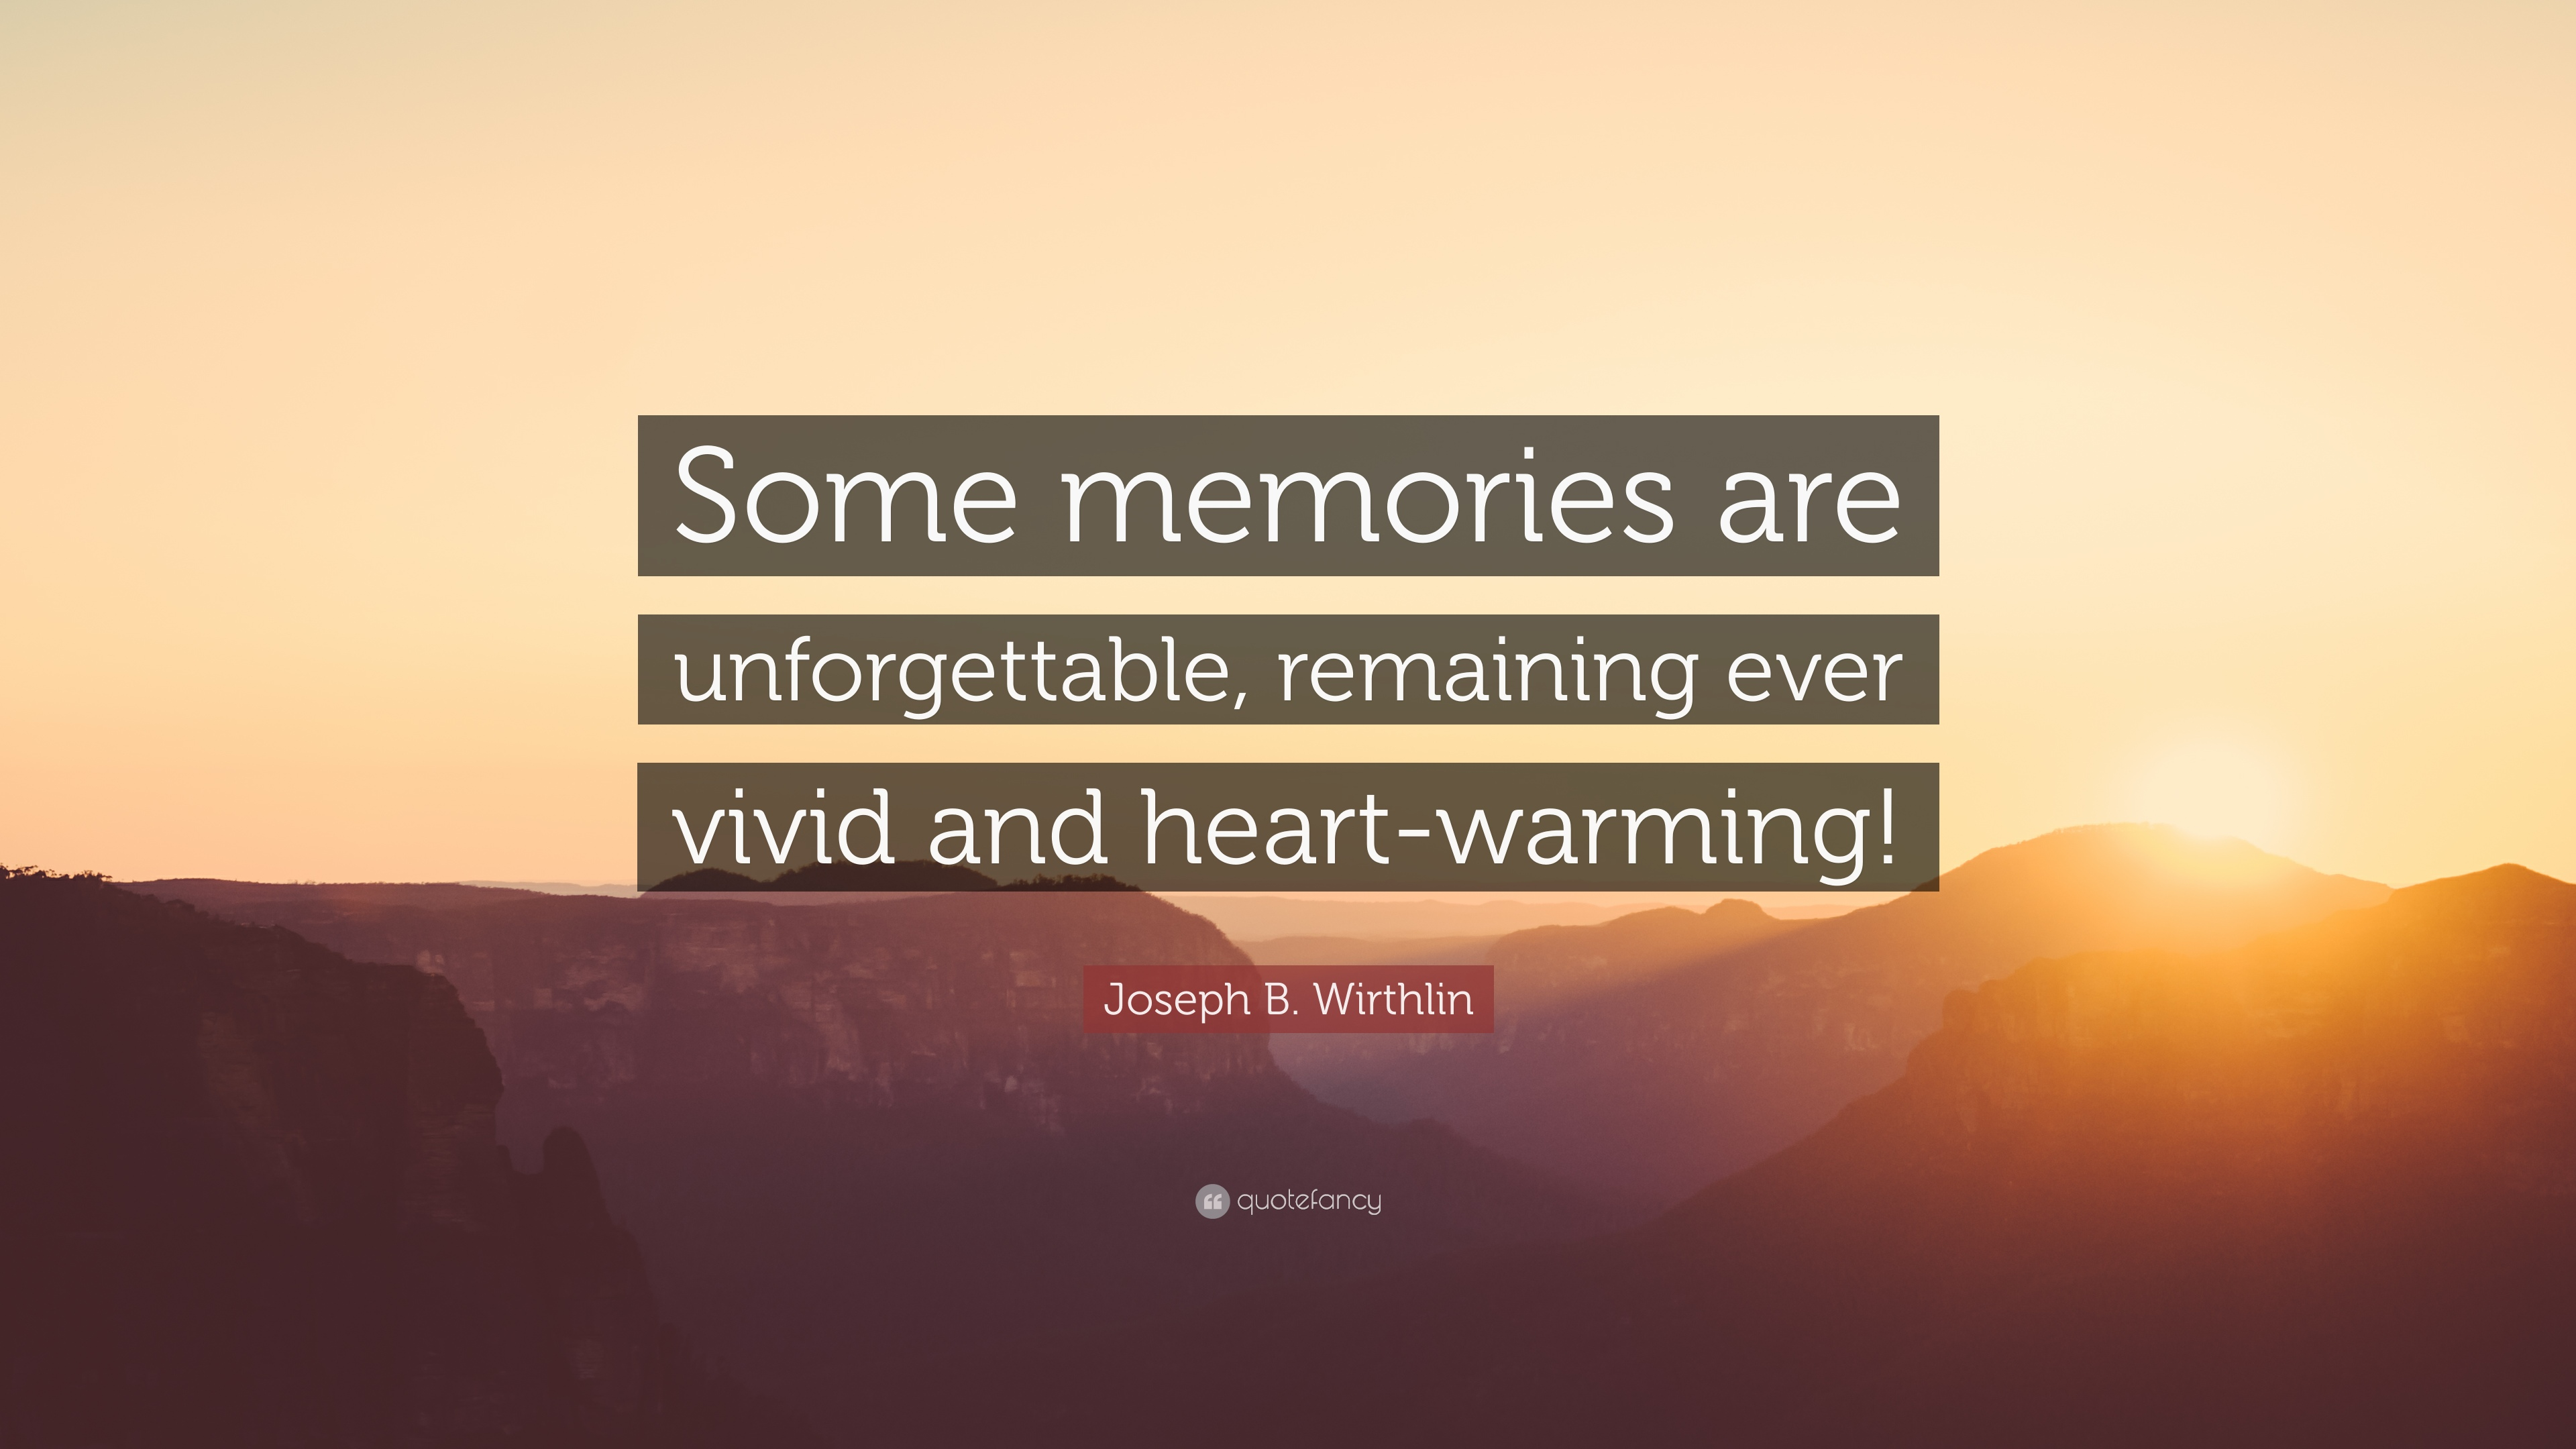 Joseph B. Wirthlin Quote: U201cSome Memories Are Unforgettable, Remaining Ever  Vivid And